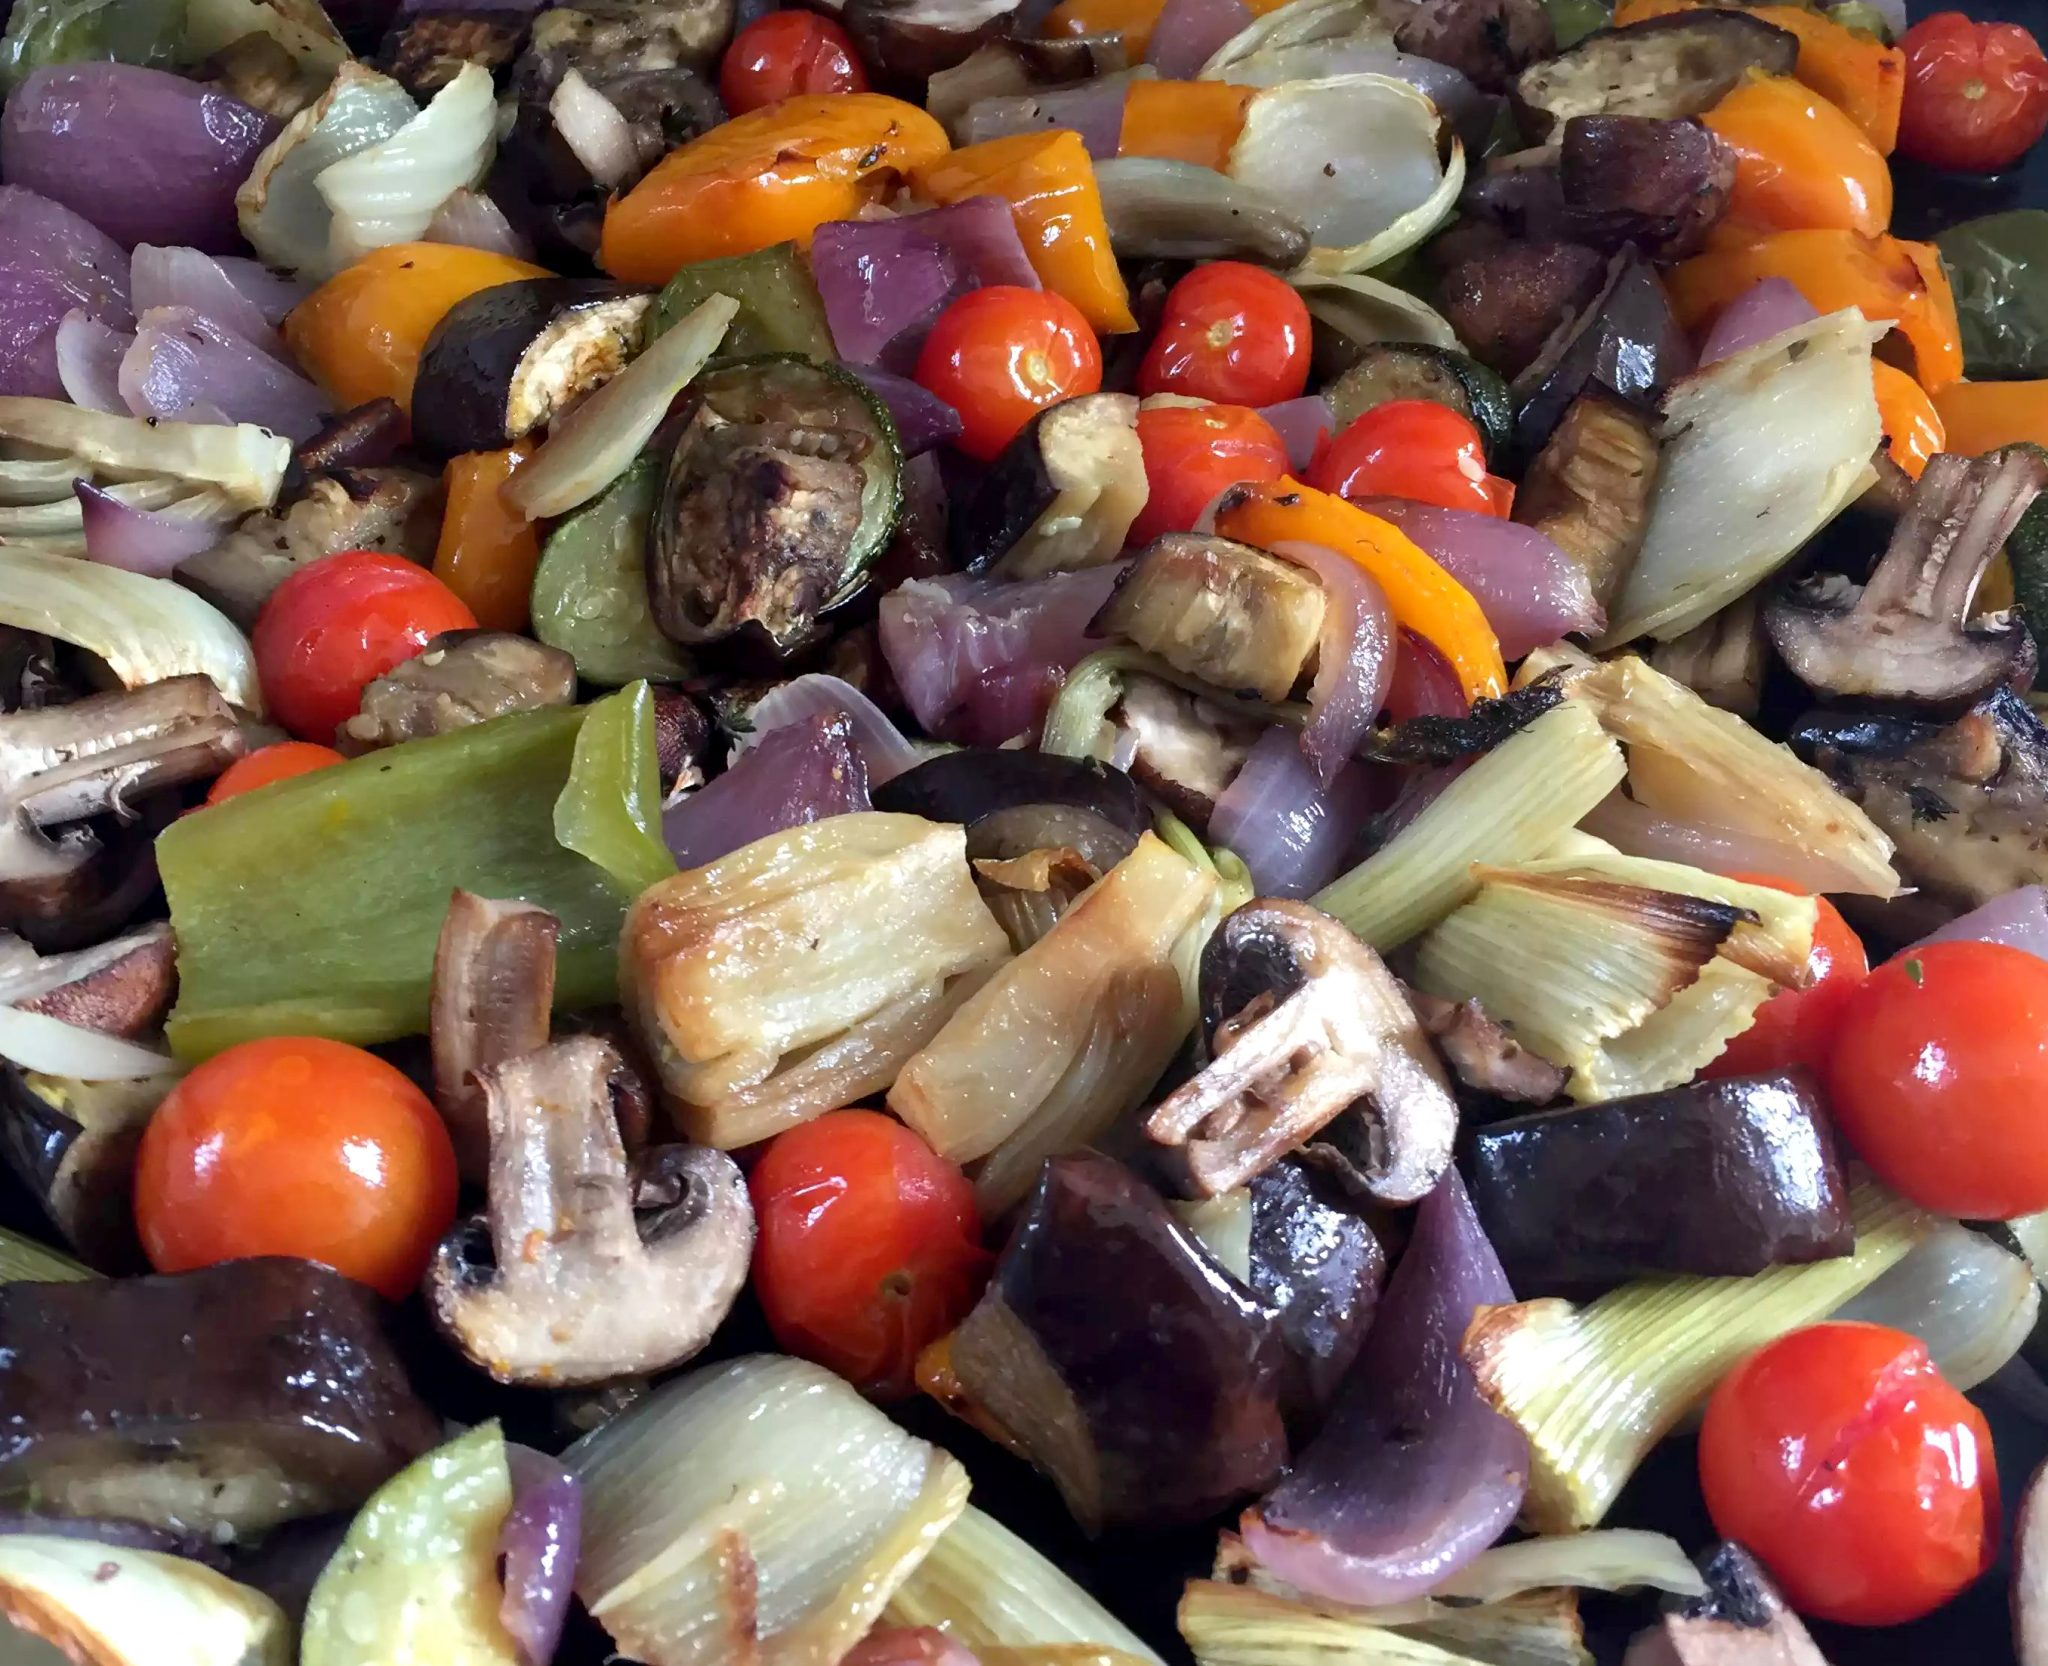 Roasted Vegetables - Paleo, SCD, Vegetarian, Vegan, Clean-Eating, Grain-Free, Gluten-Free, Dairy-Free